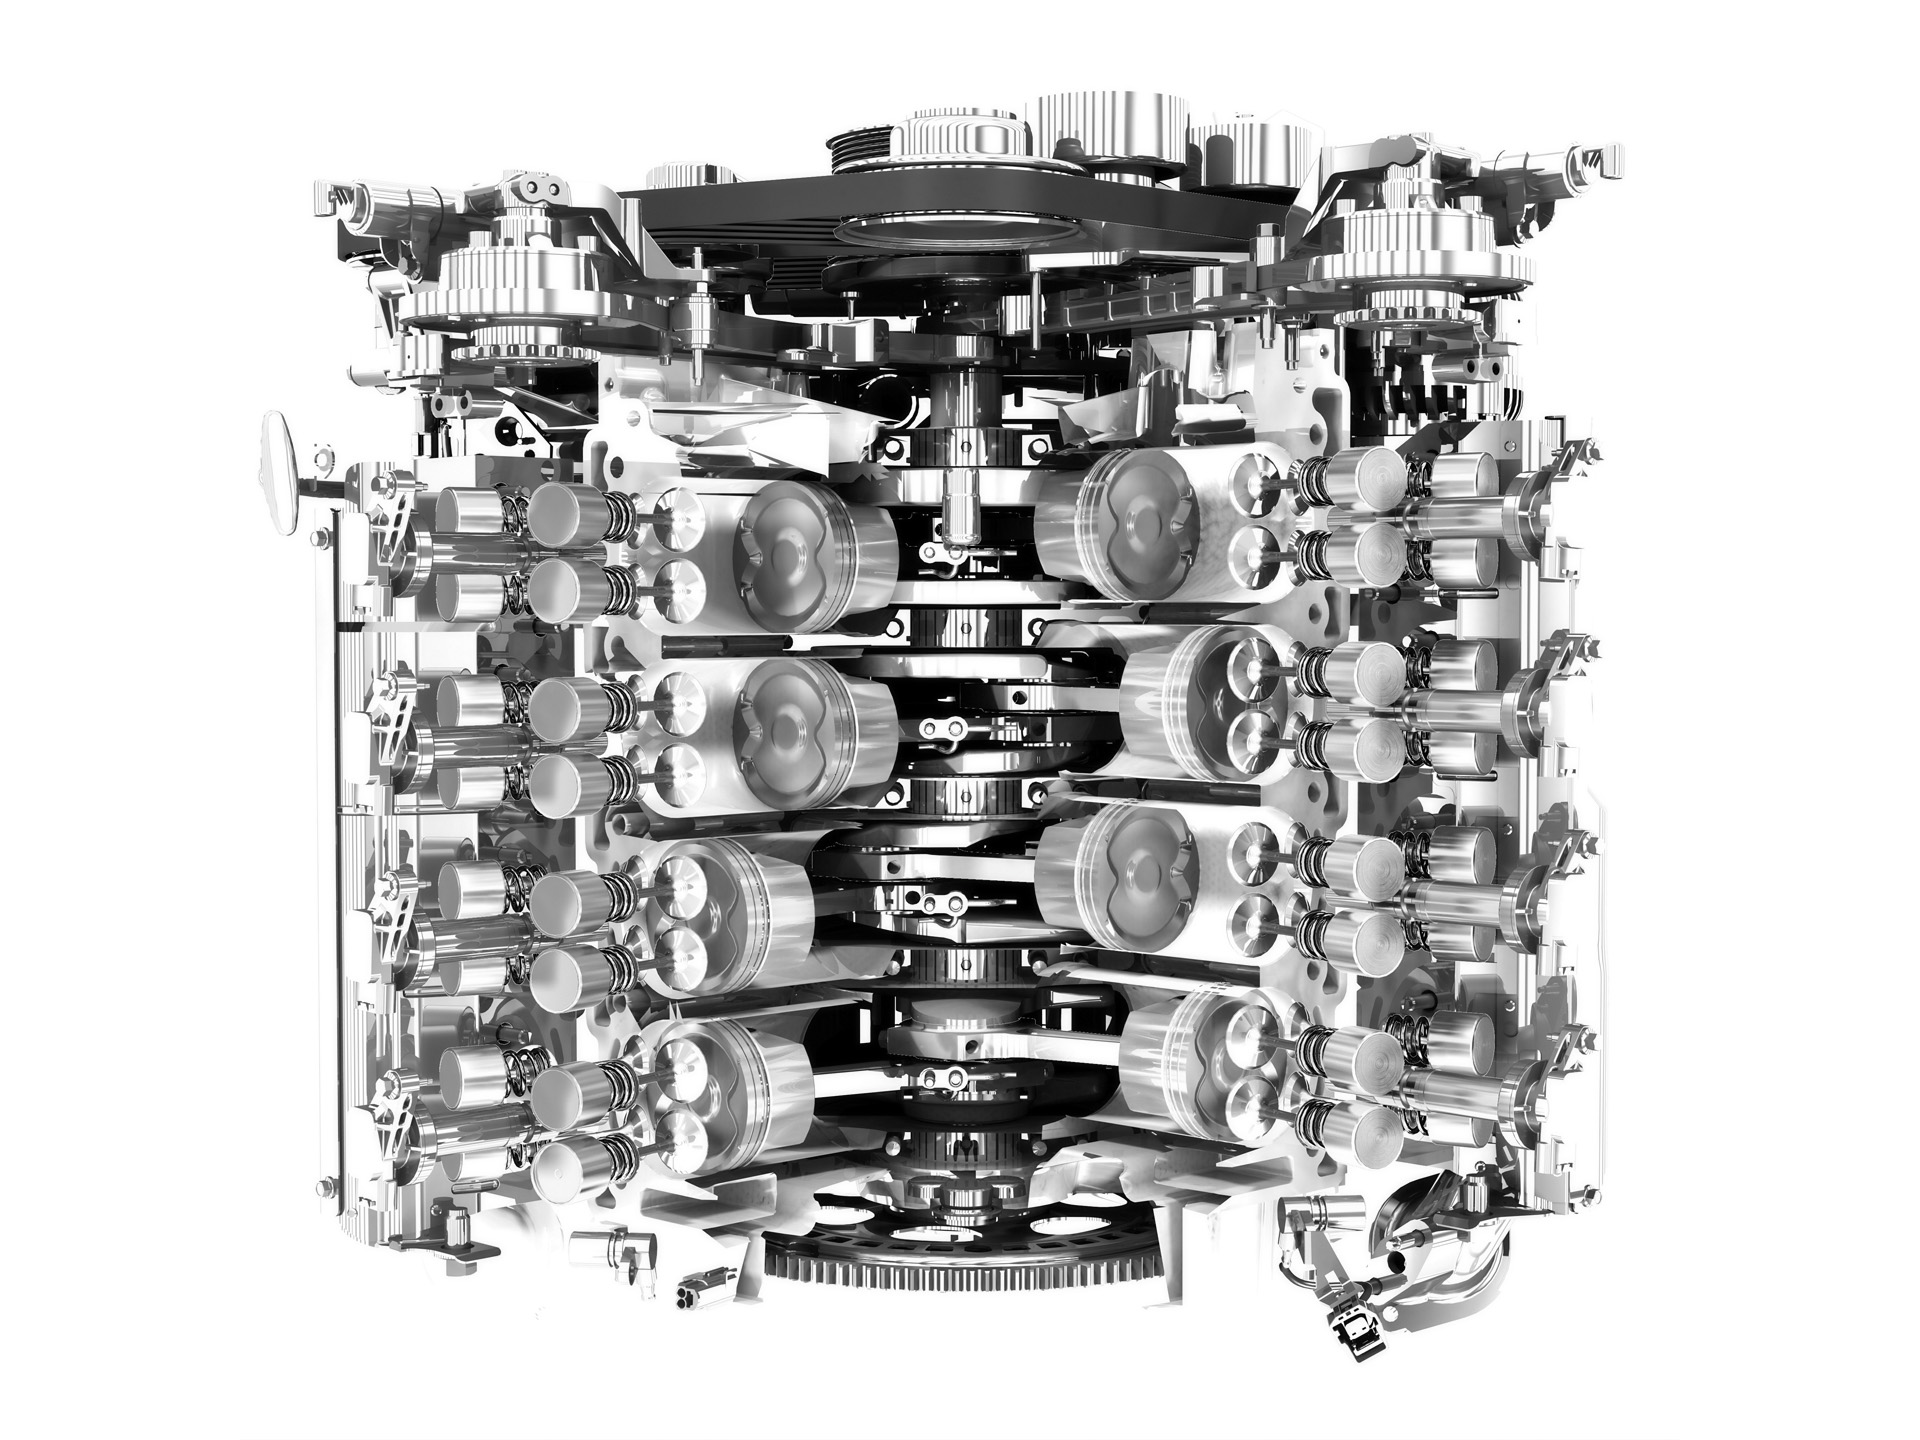 Sample P1486 Engine